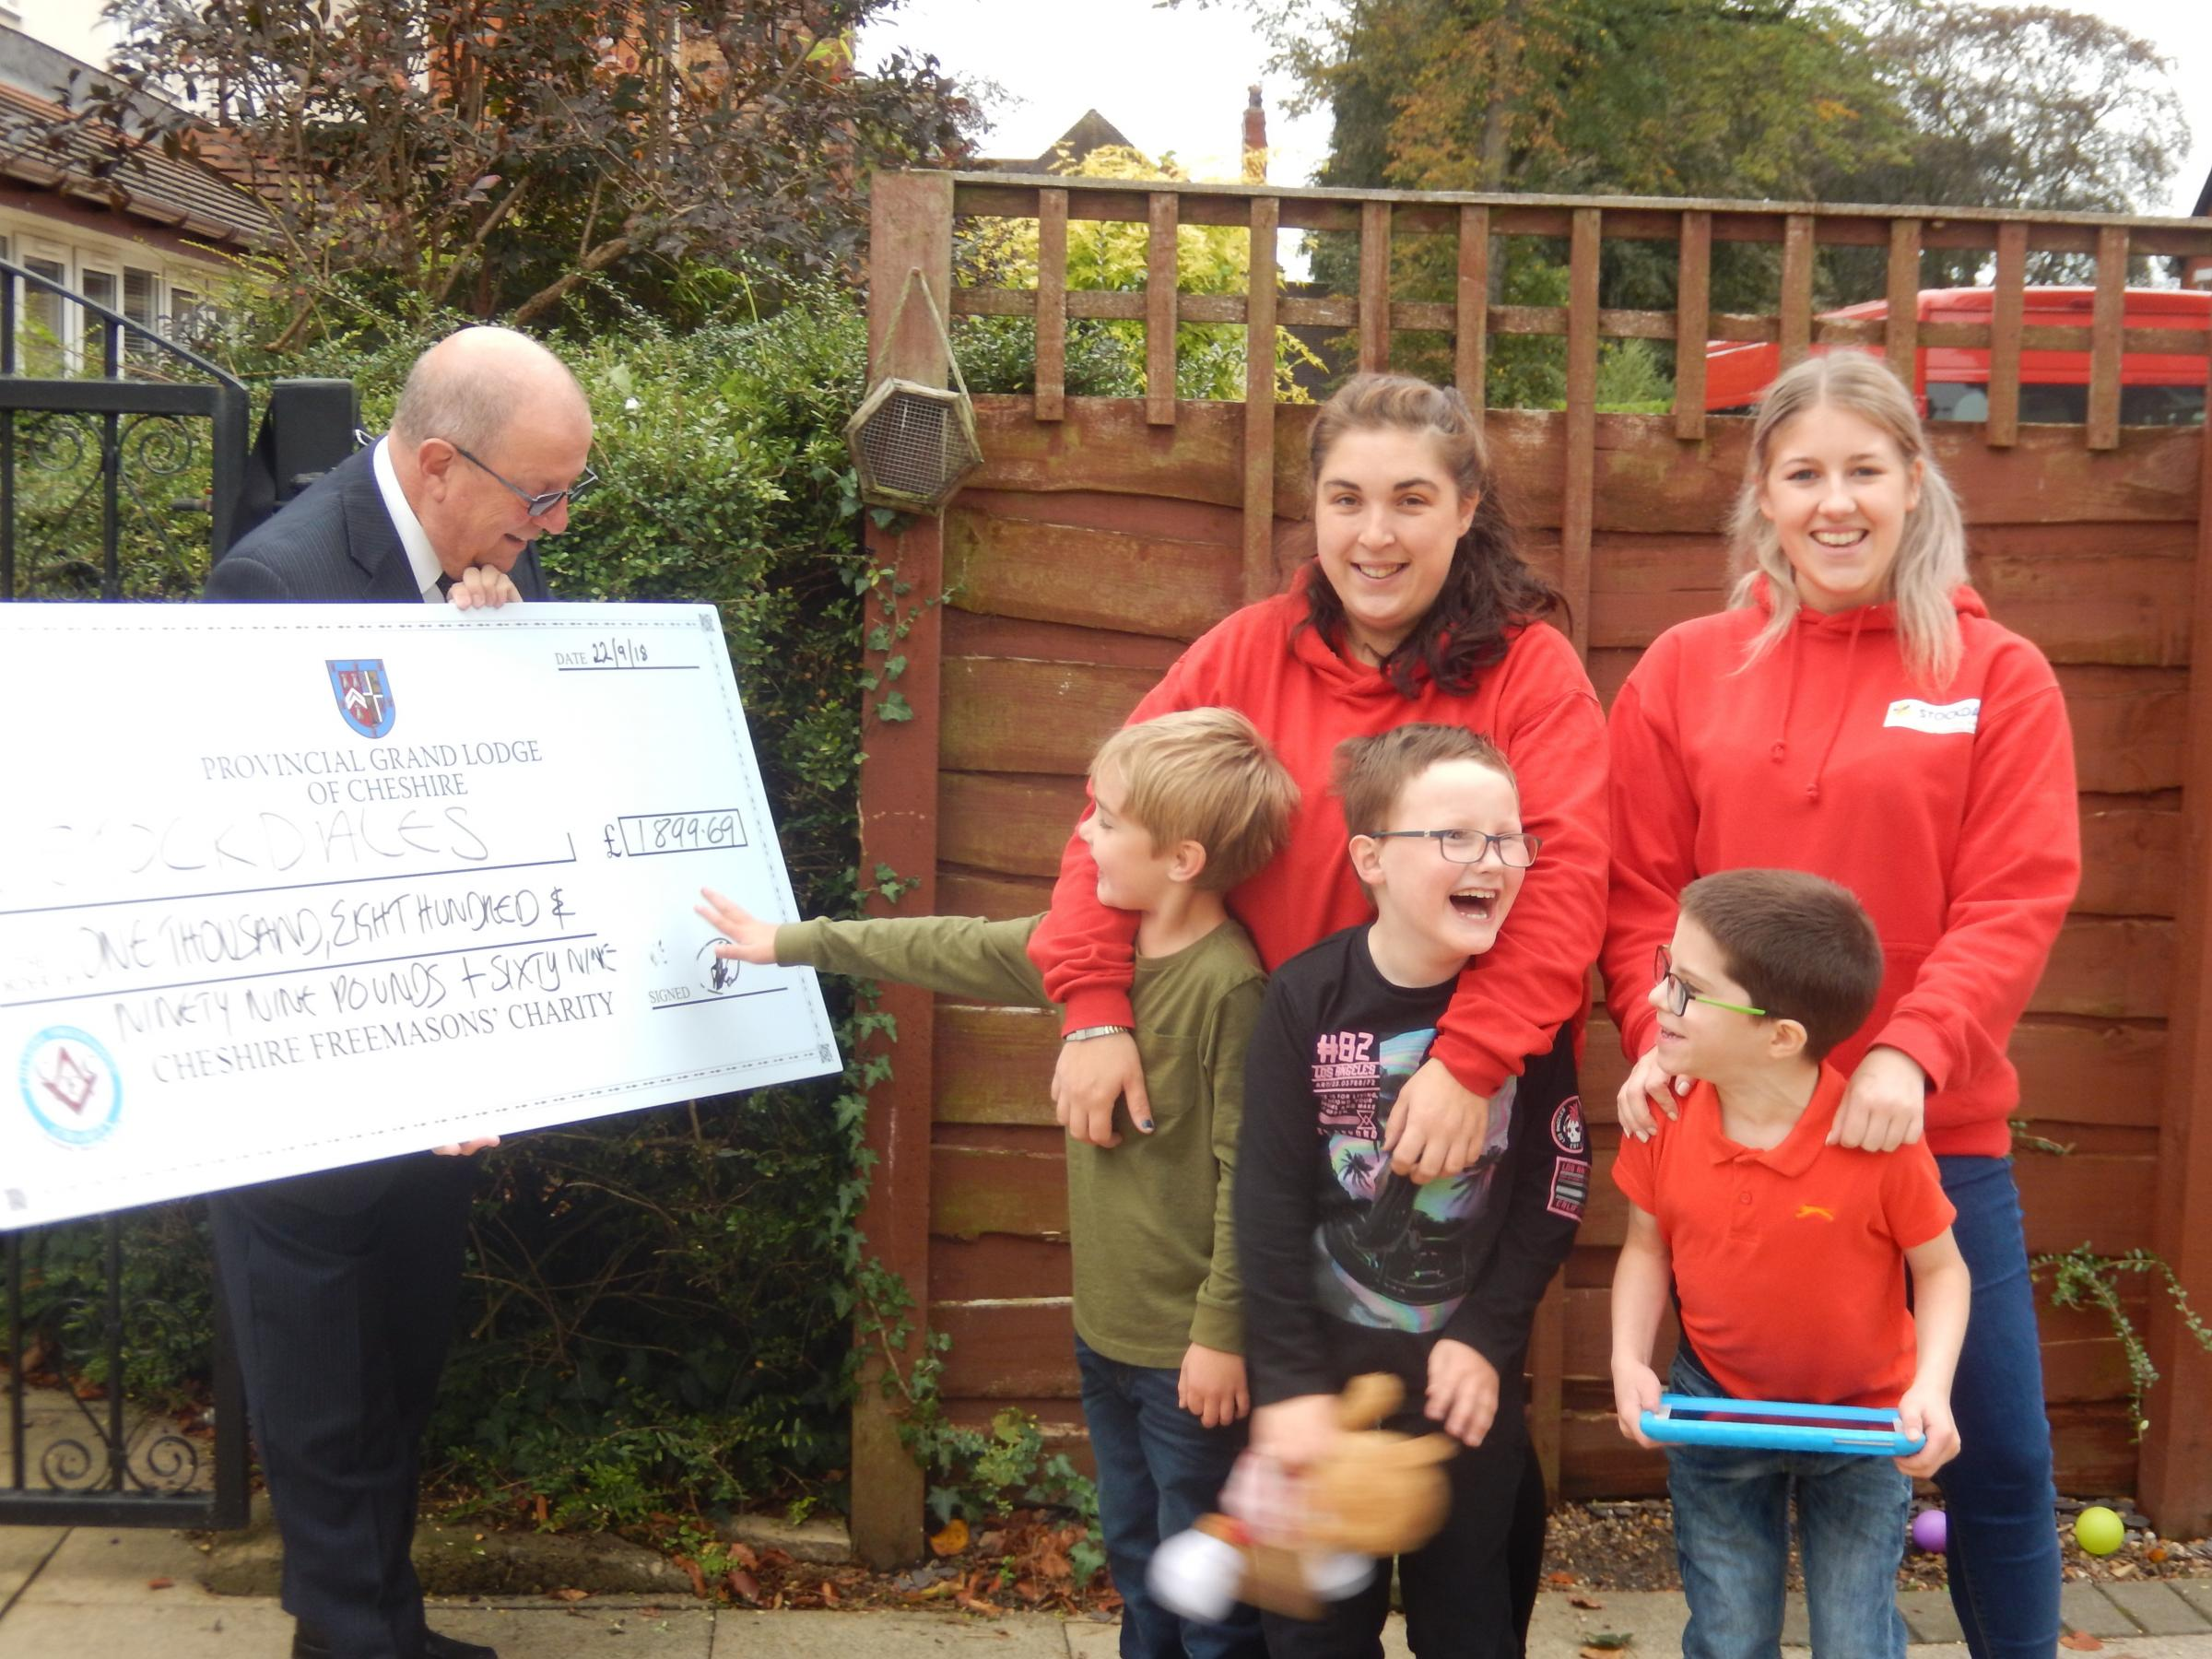 Freemason Keith Howbrigg presents a cheque for nearly £2,000 to Stockdales volunteers Danielle Collier and Molly Taylor, alongside Efe, Thomas and Joshua.